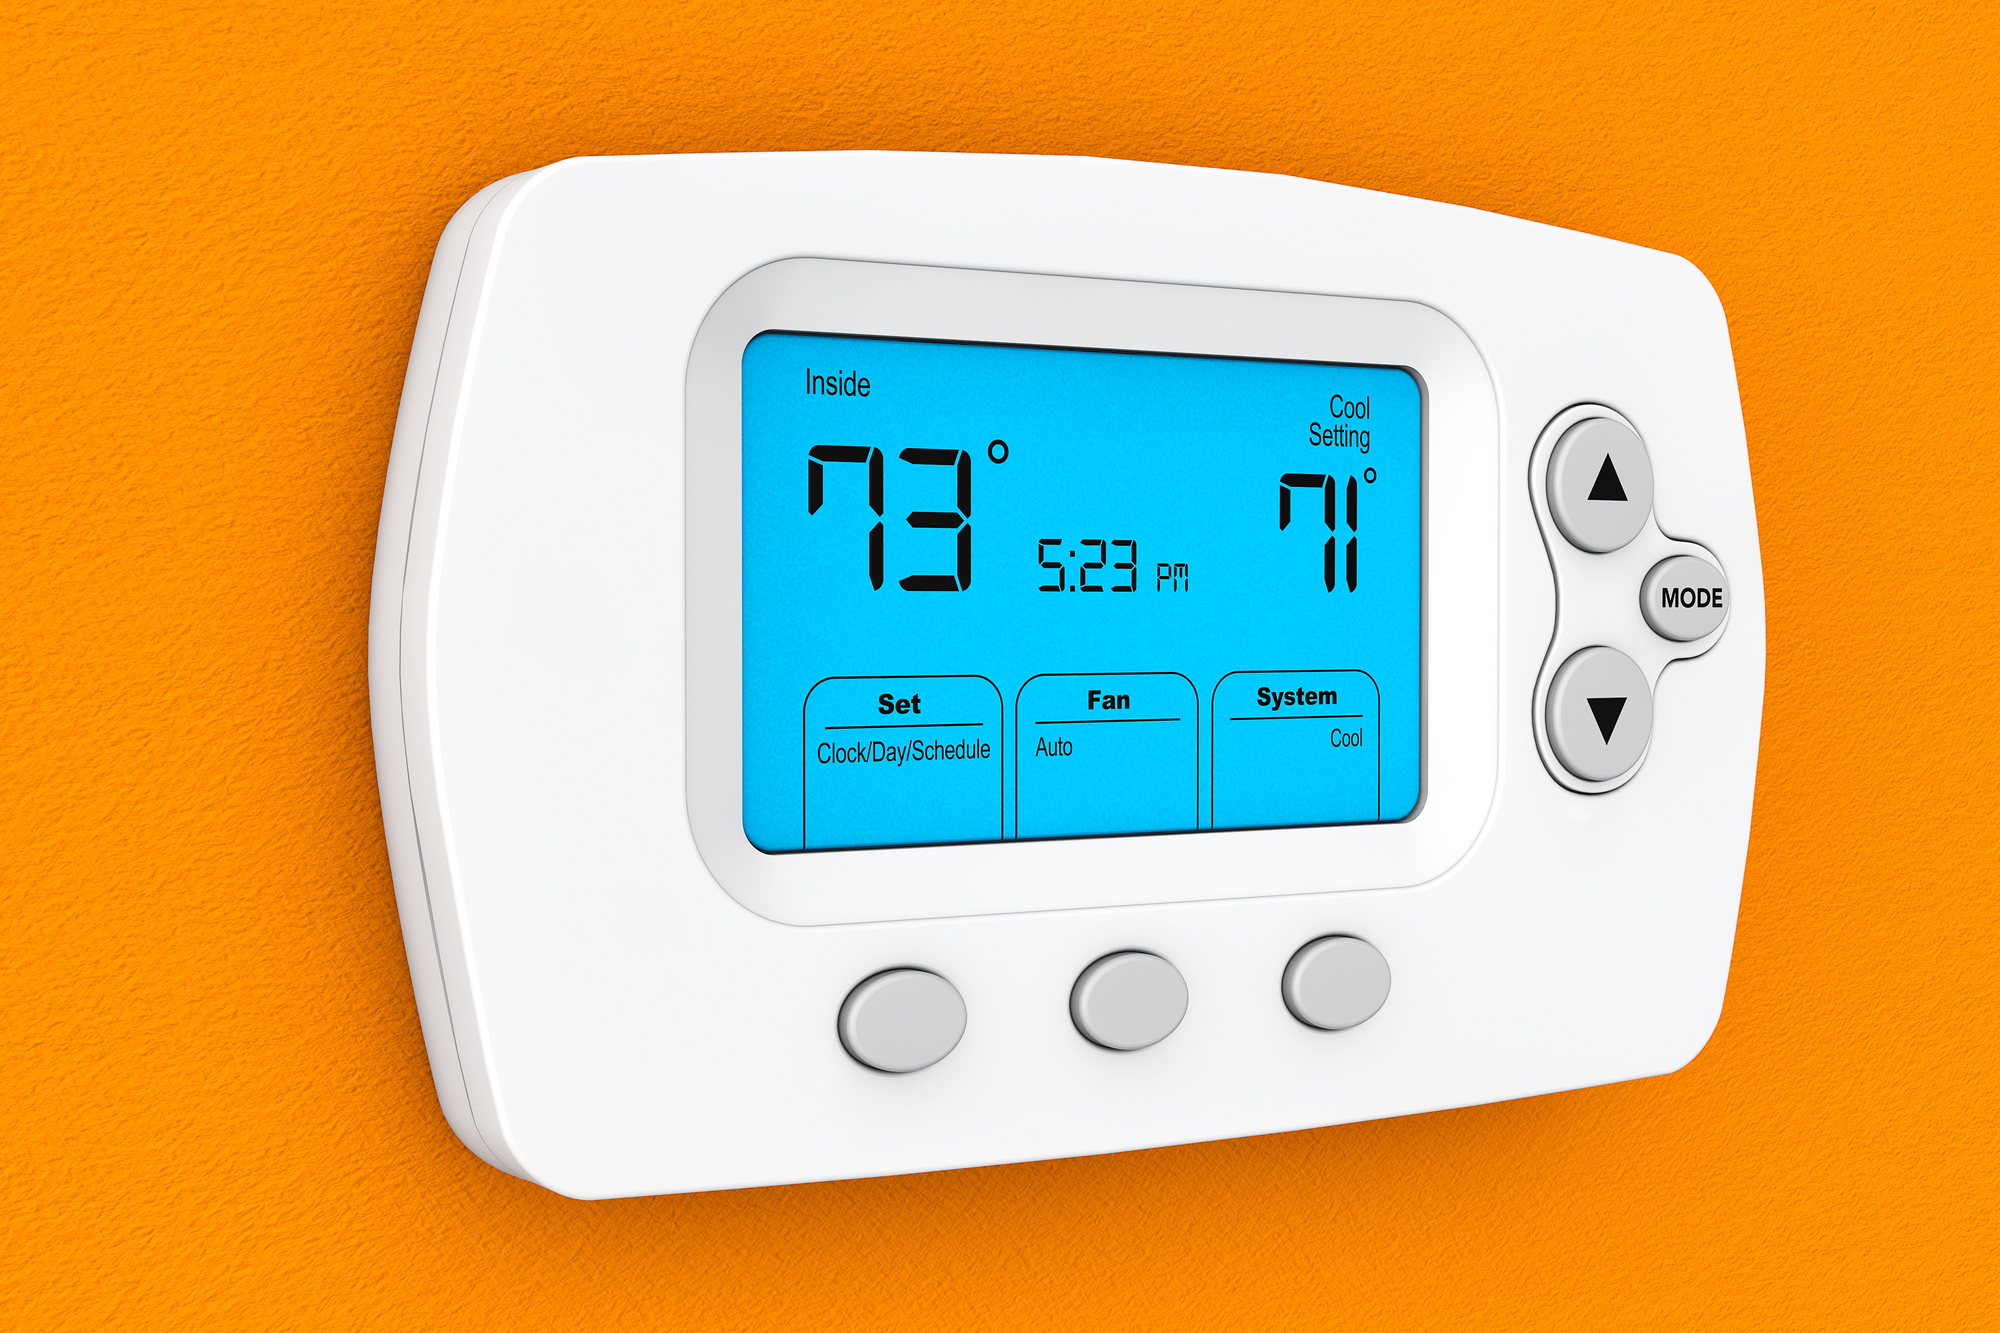 Lux thermostat